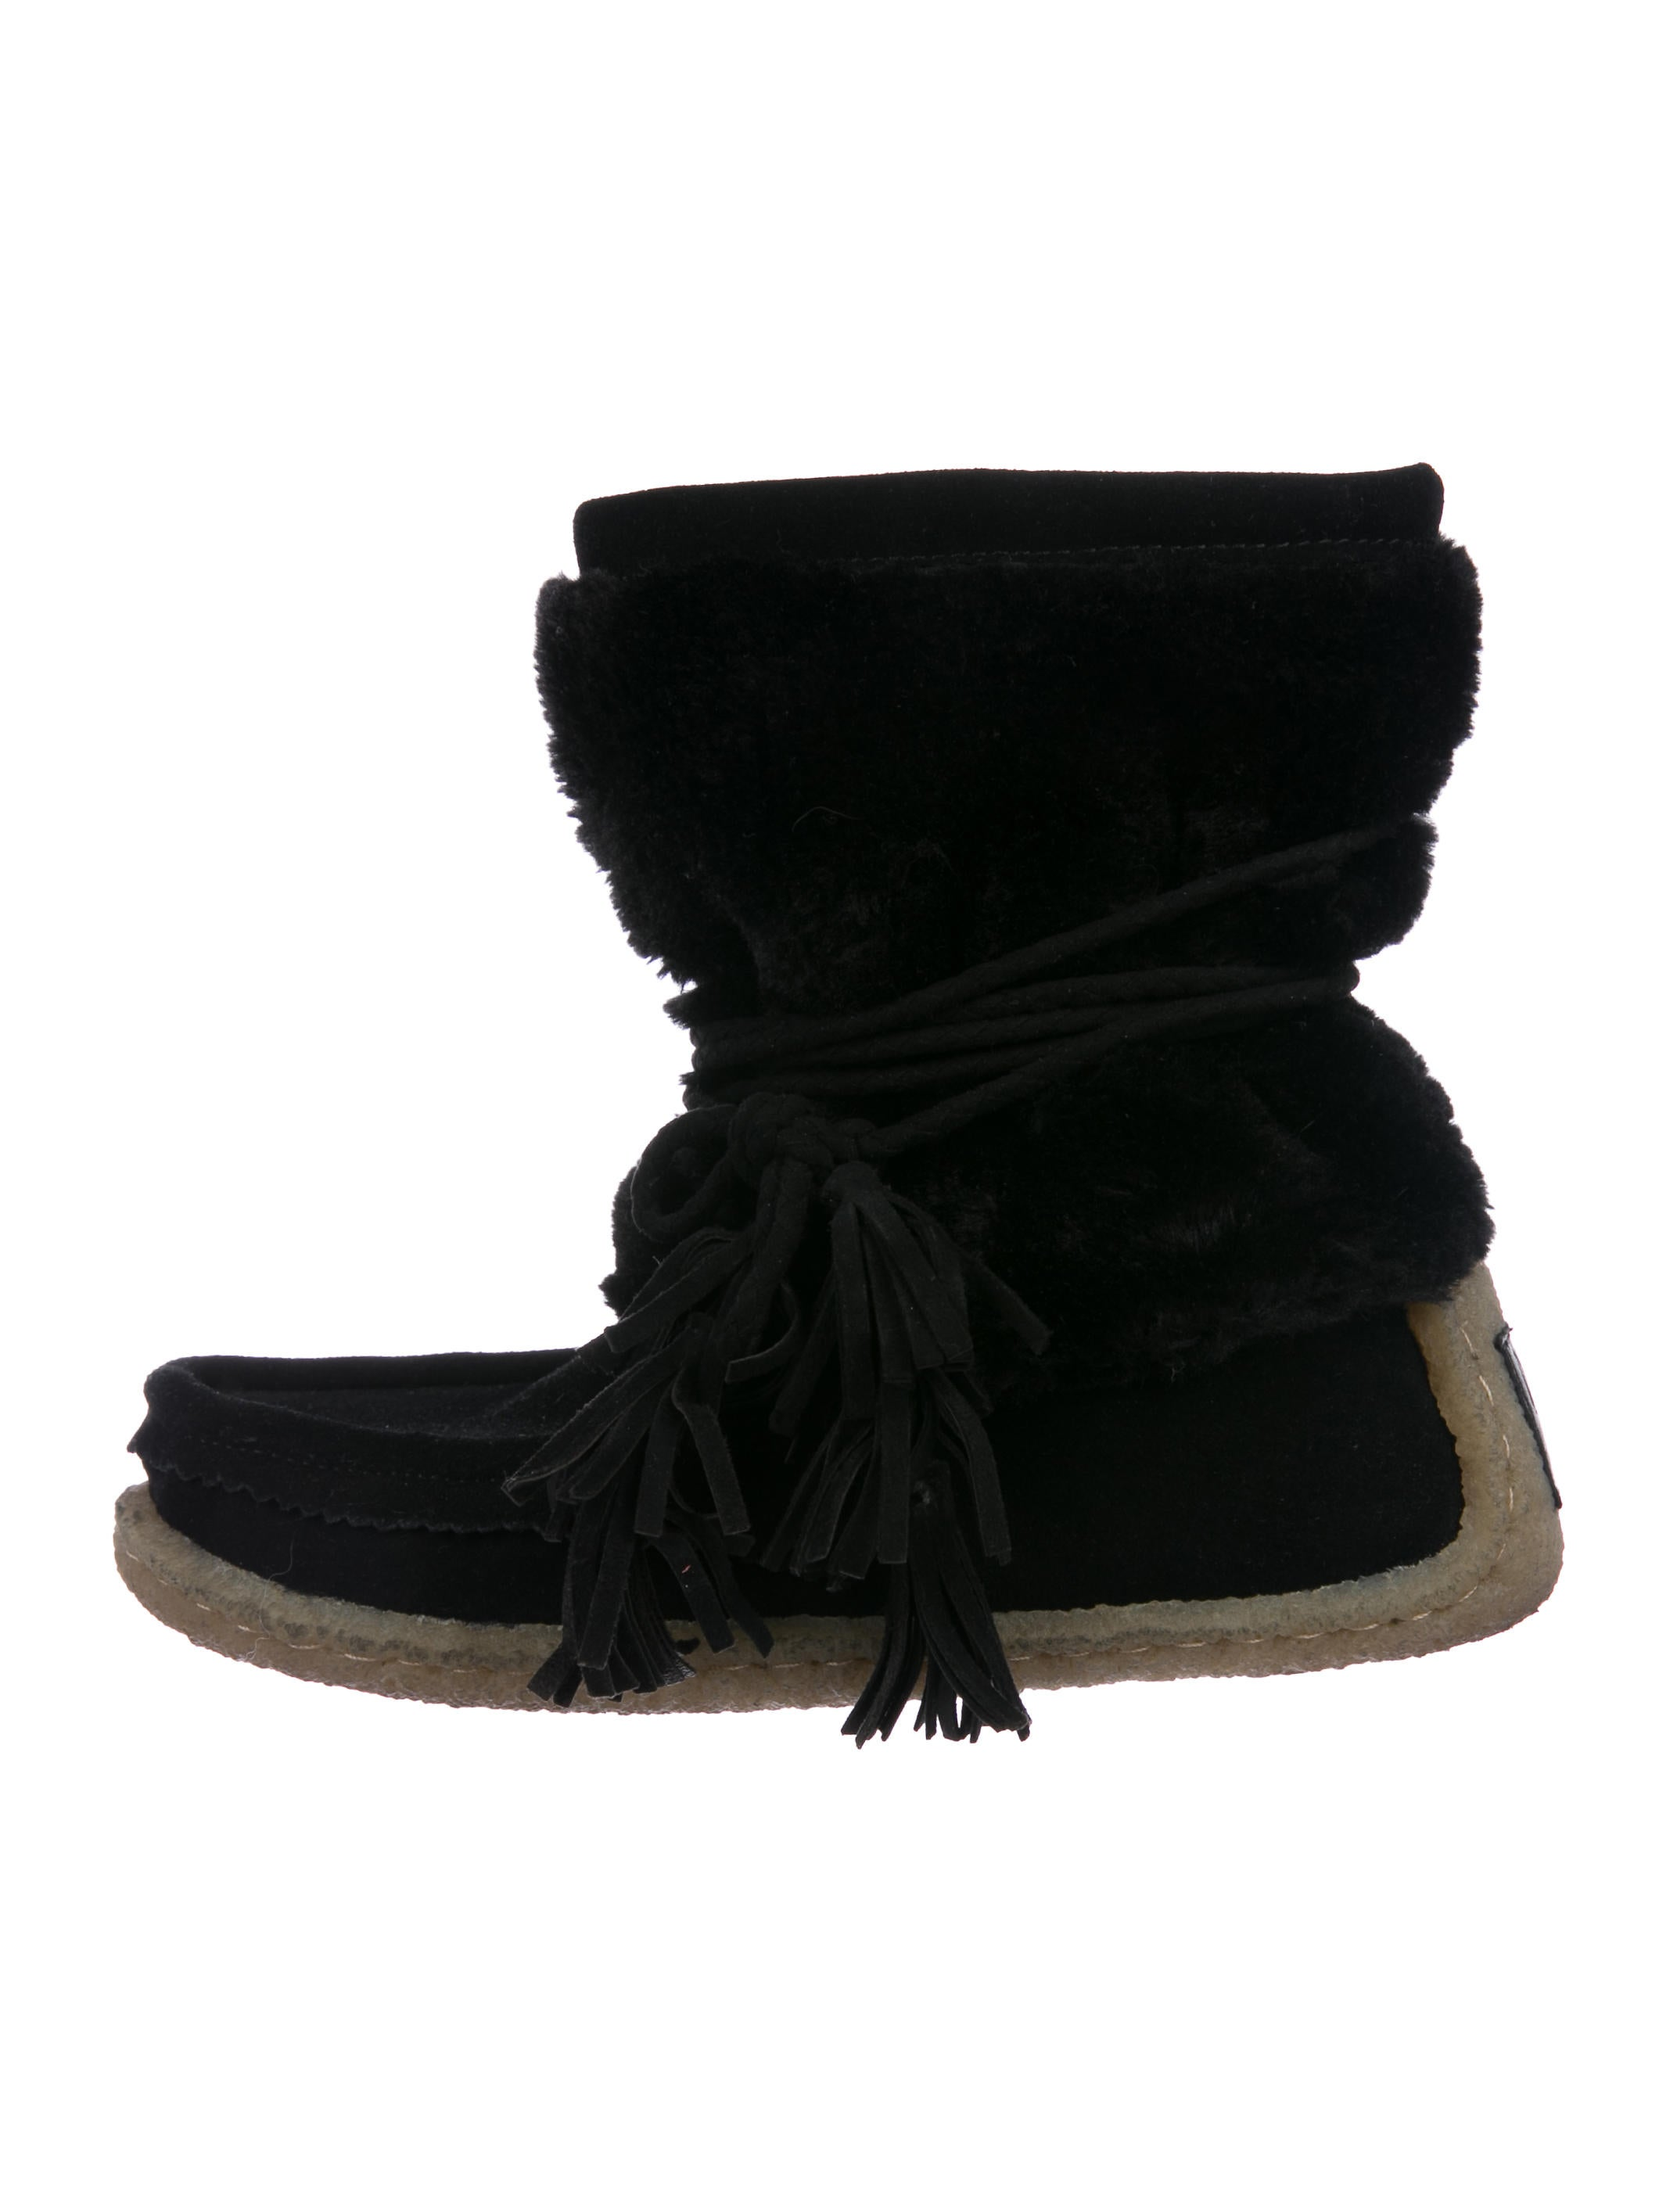 Joie Alabama Suede and Faux Fur Ankle Boots free shipping fashion Style tumblr online sale very cheap clearance huge surprise best deals Zc18Bqk